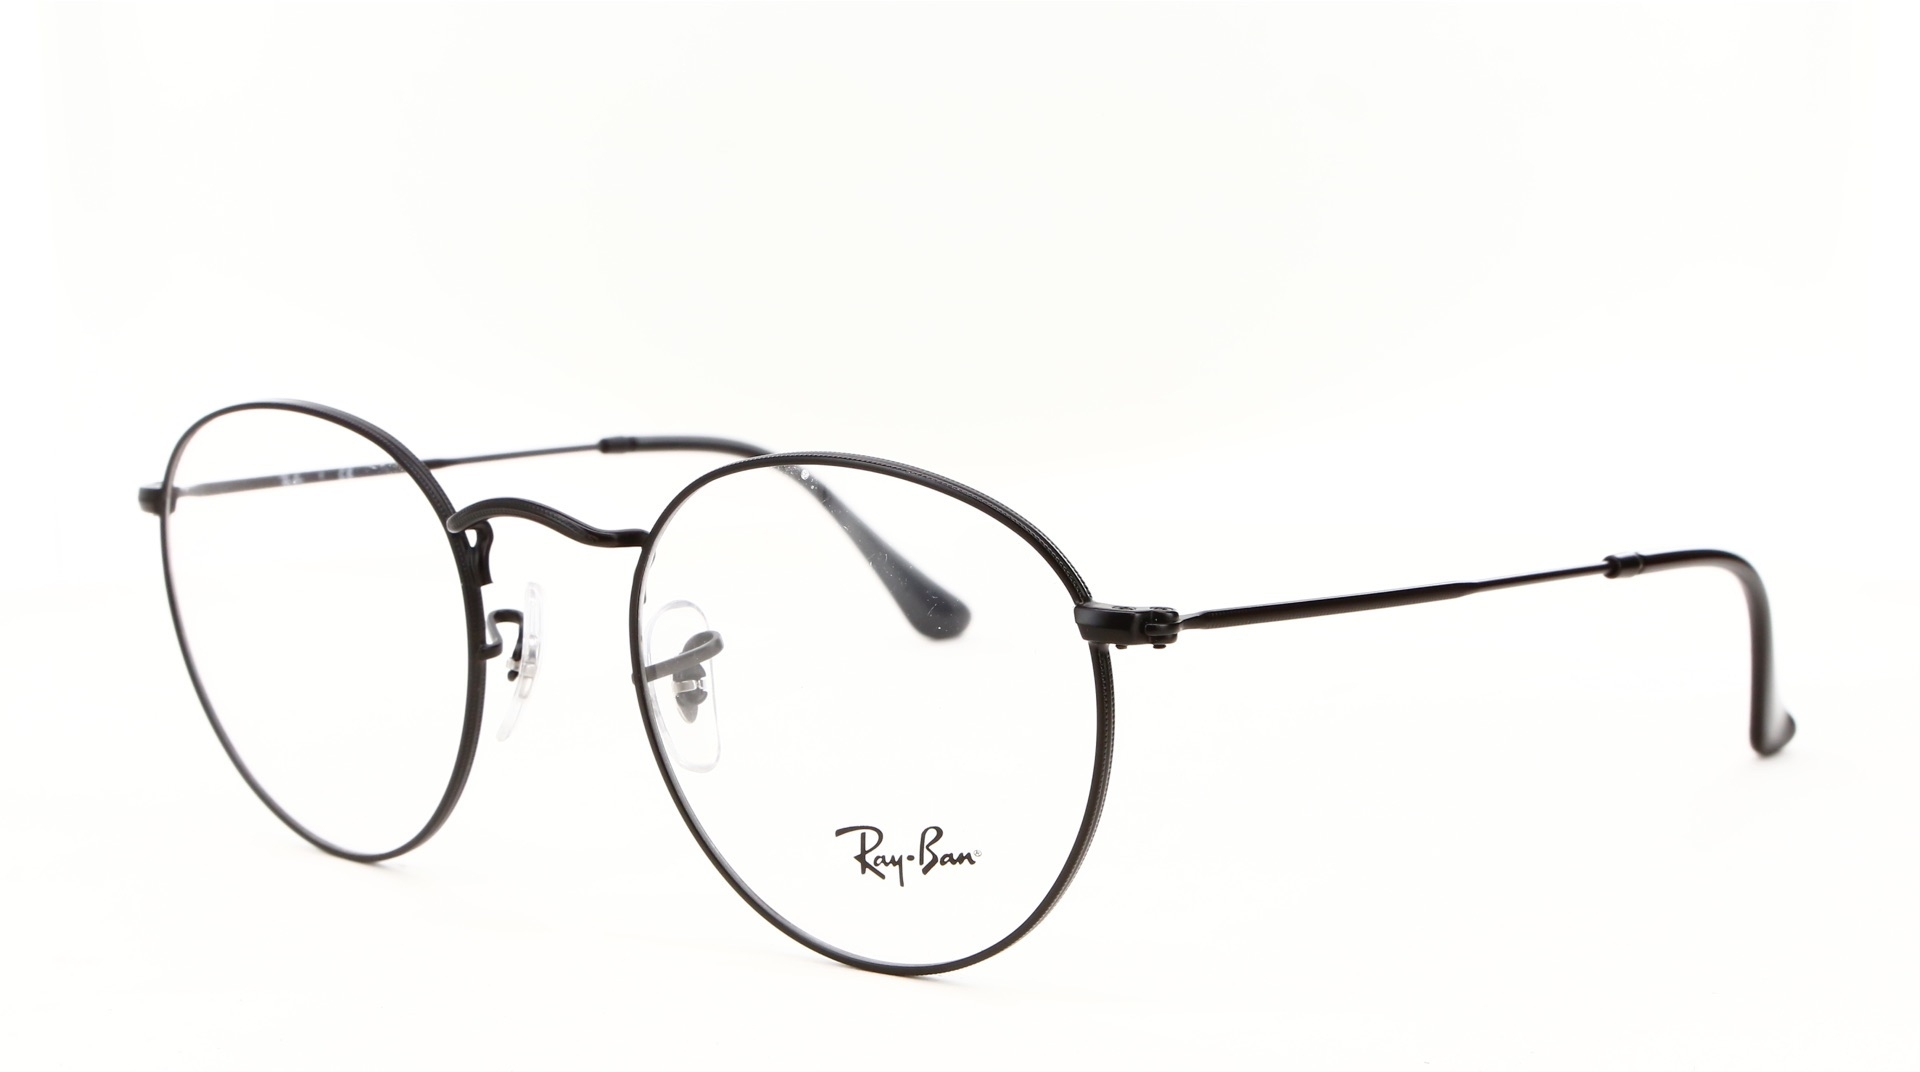 Ray-Ban - ref: 76169